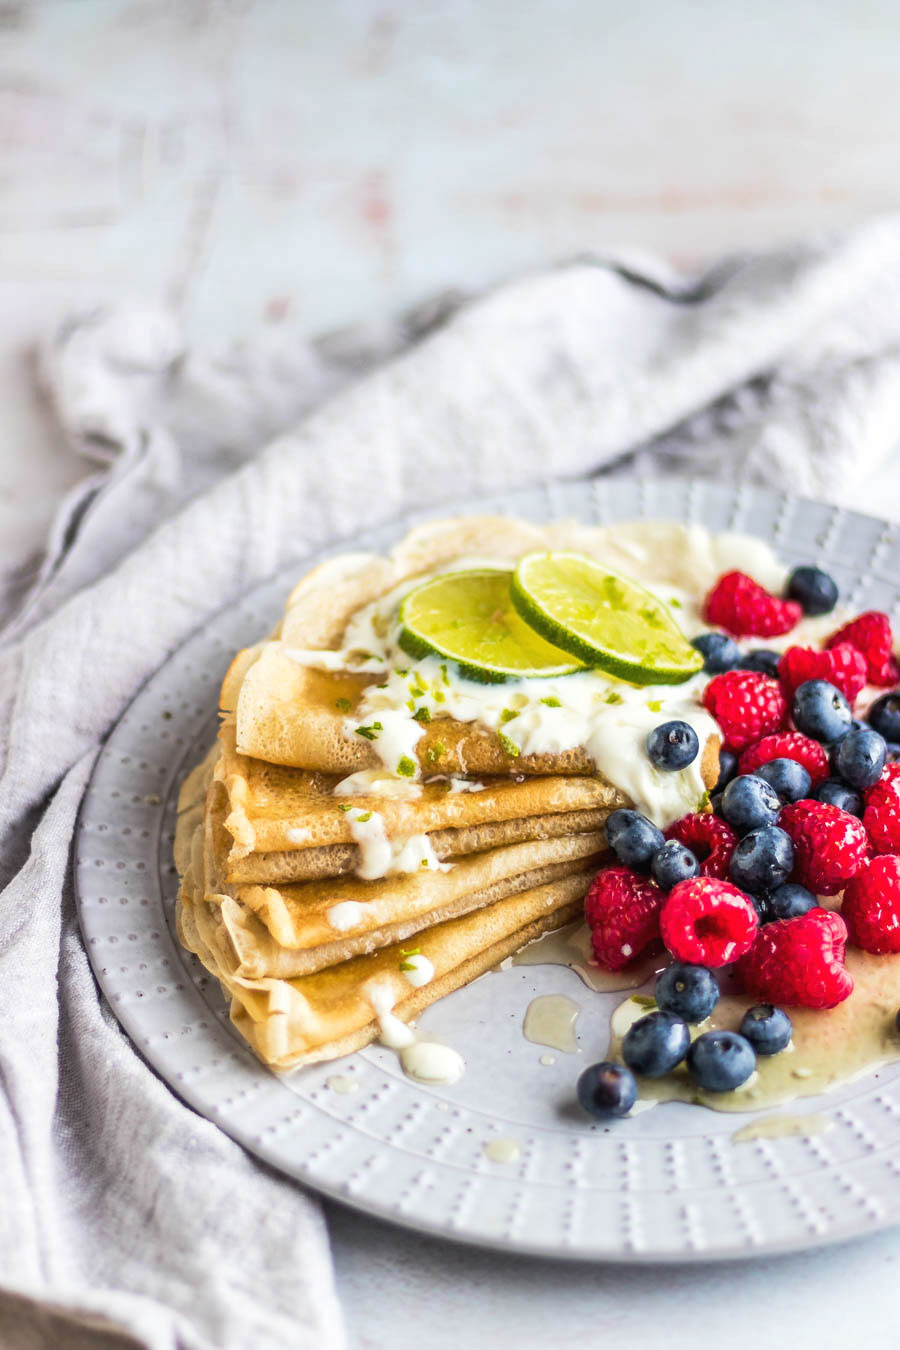 Vegan Crepes With Zingy Lime Syrup